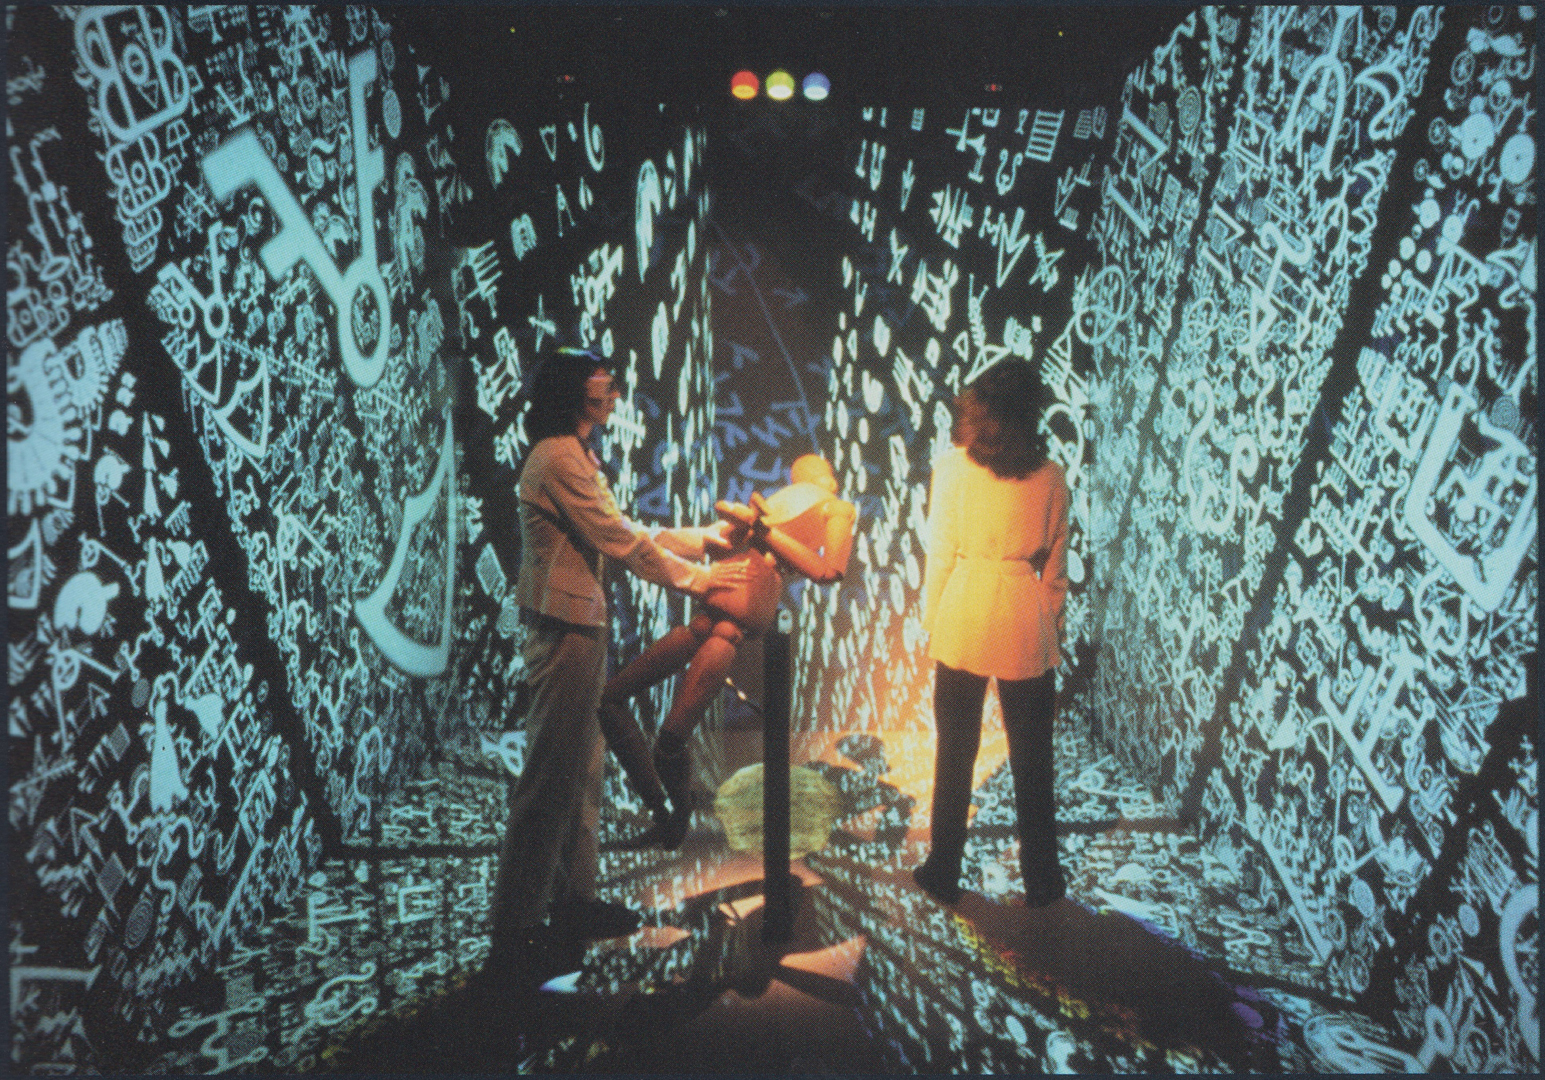 ©1997, Agnes Hegedus, Jeffrey Shaw, and Bernd Lintermann, Configuring the Cave